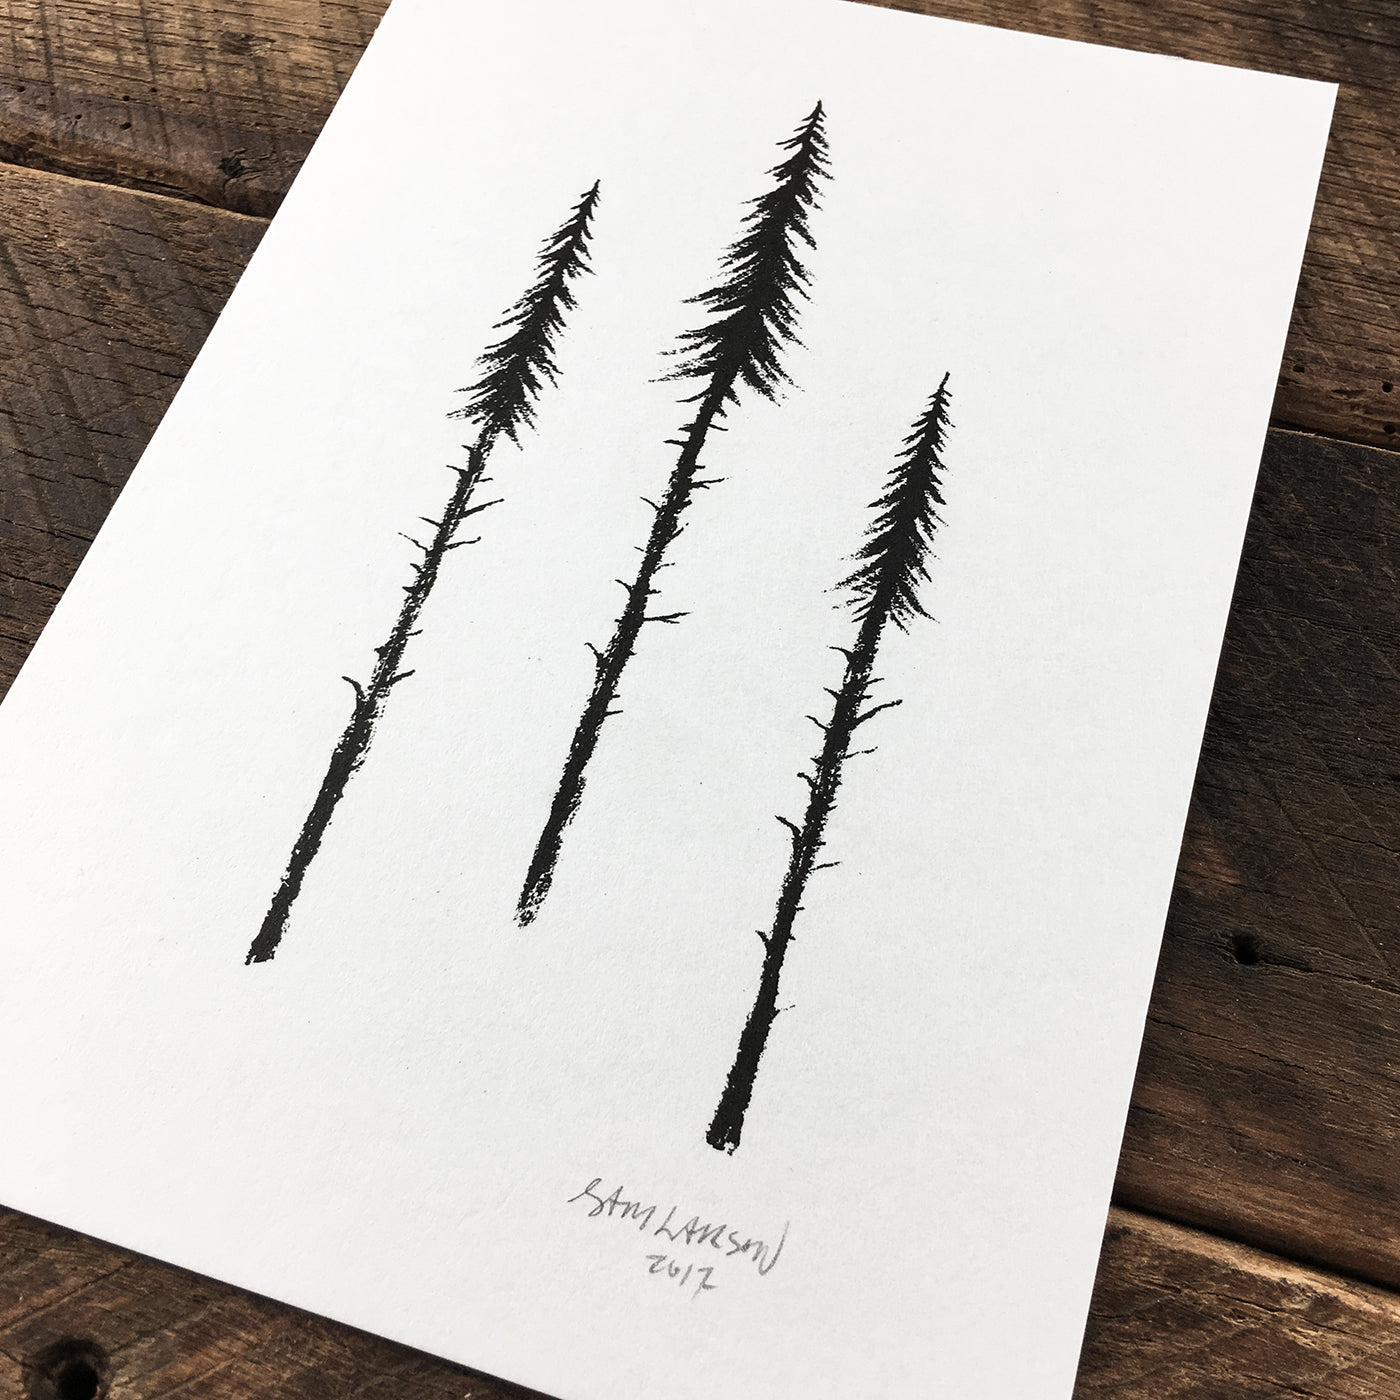 Three Pines - Signed Print #21